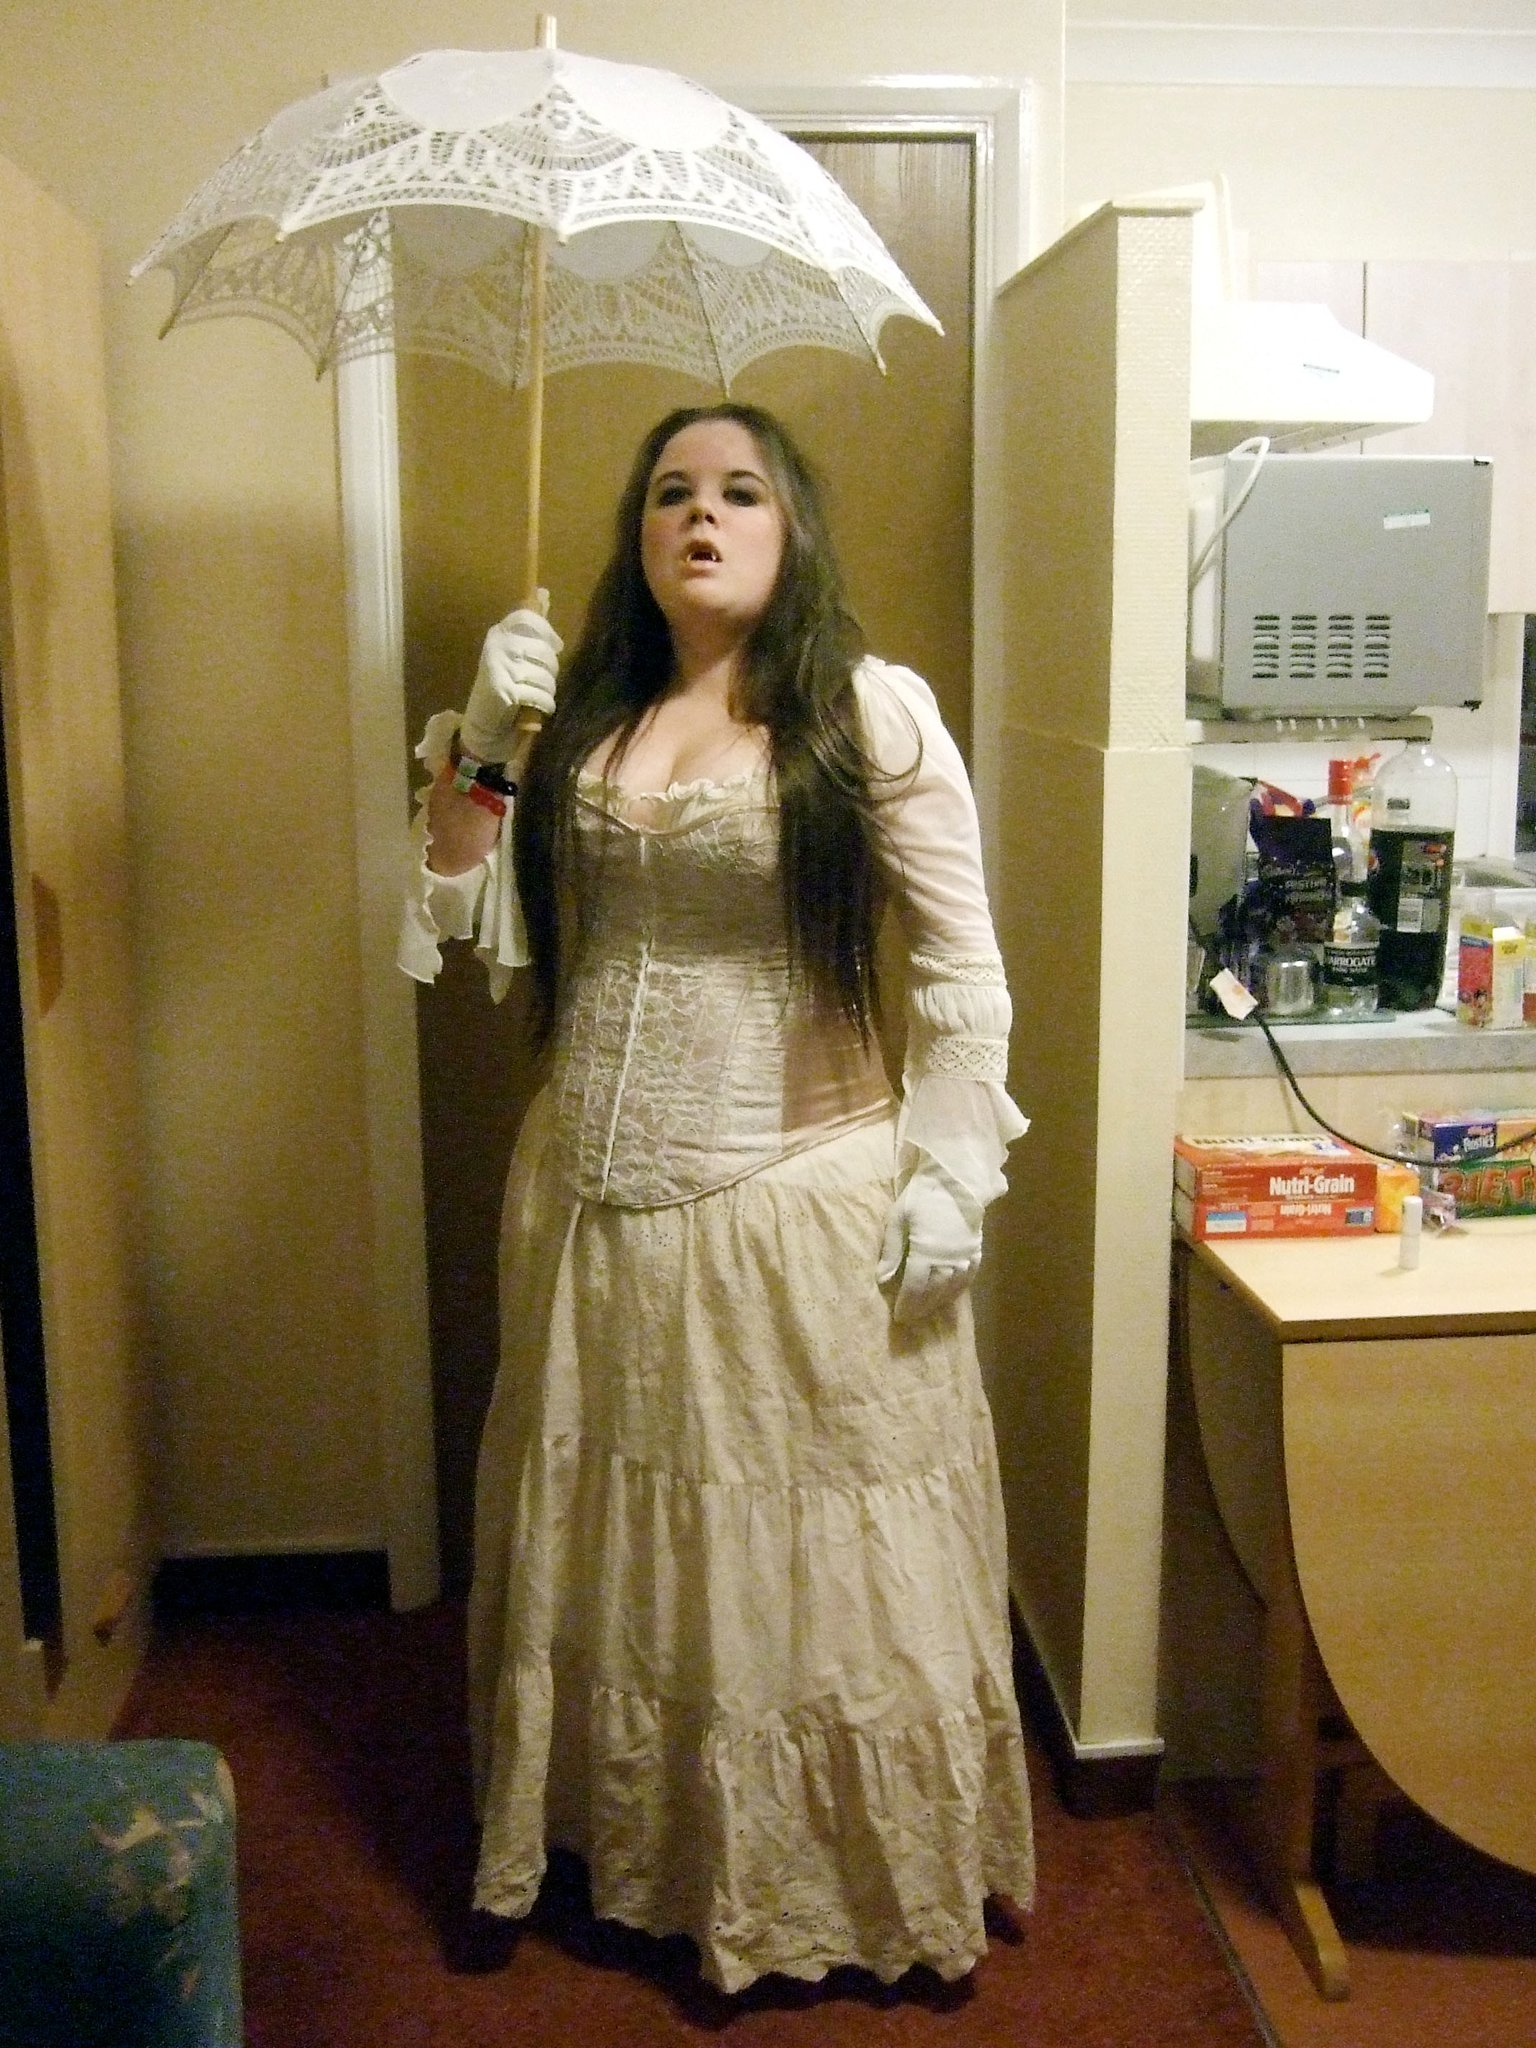 A woman dressed all in white, holding a white parasol above her head. She is wearing vampire fangs